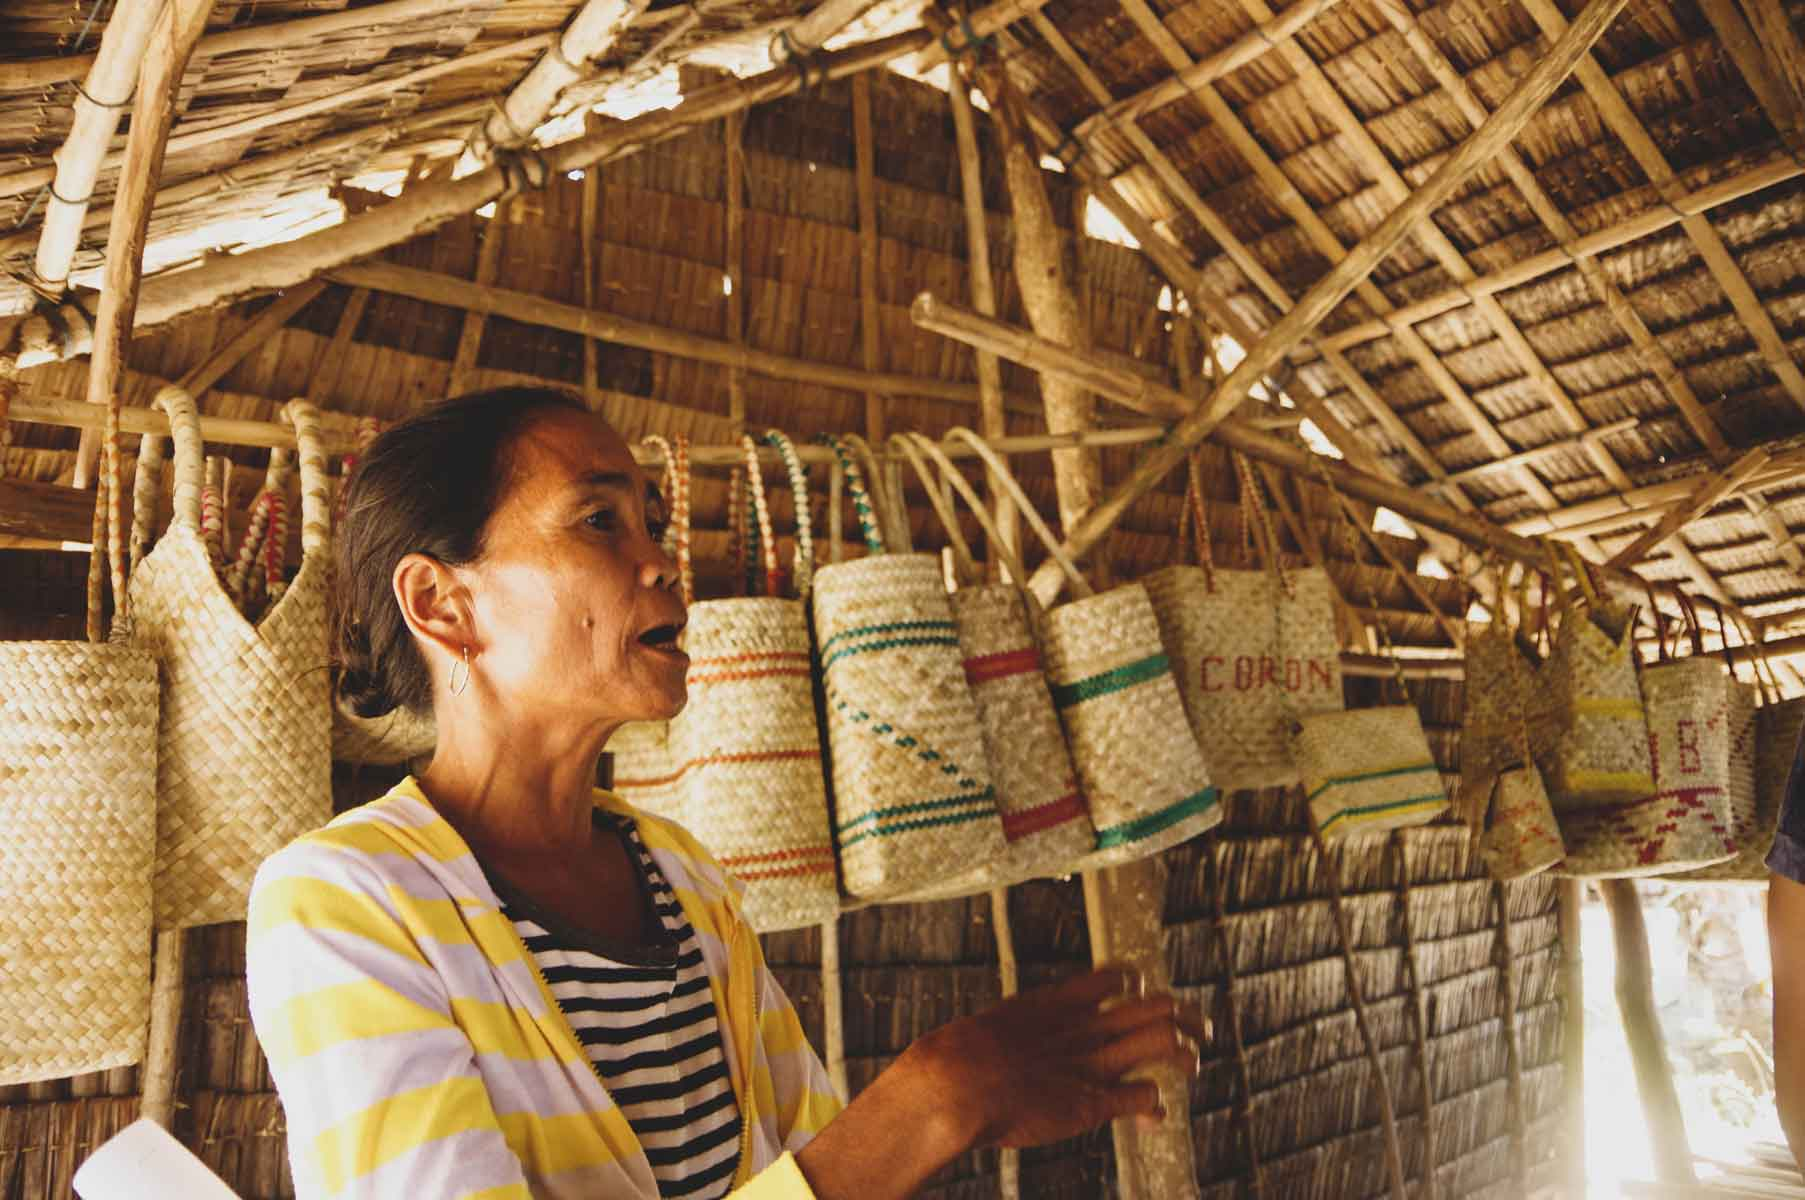 A member of the Sékéd Weavers Association introducing the variety of products and patterns they create and sell.